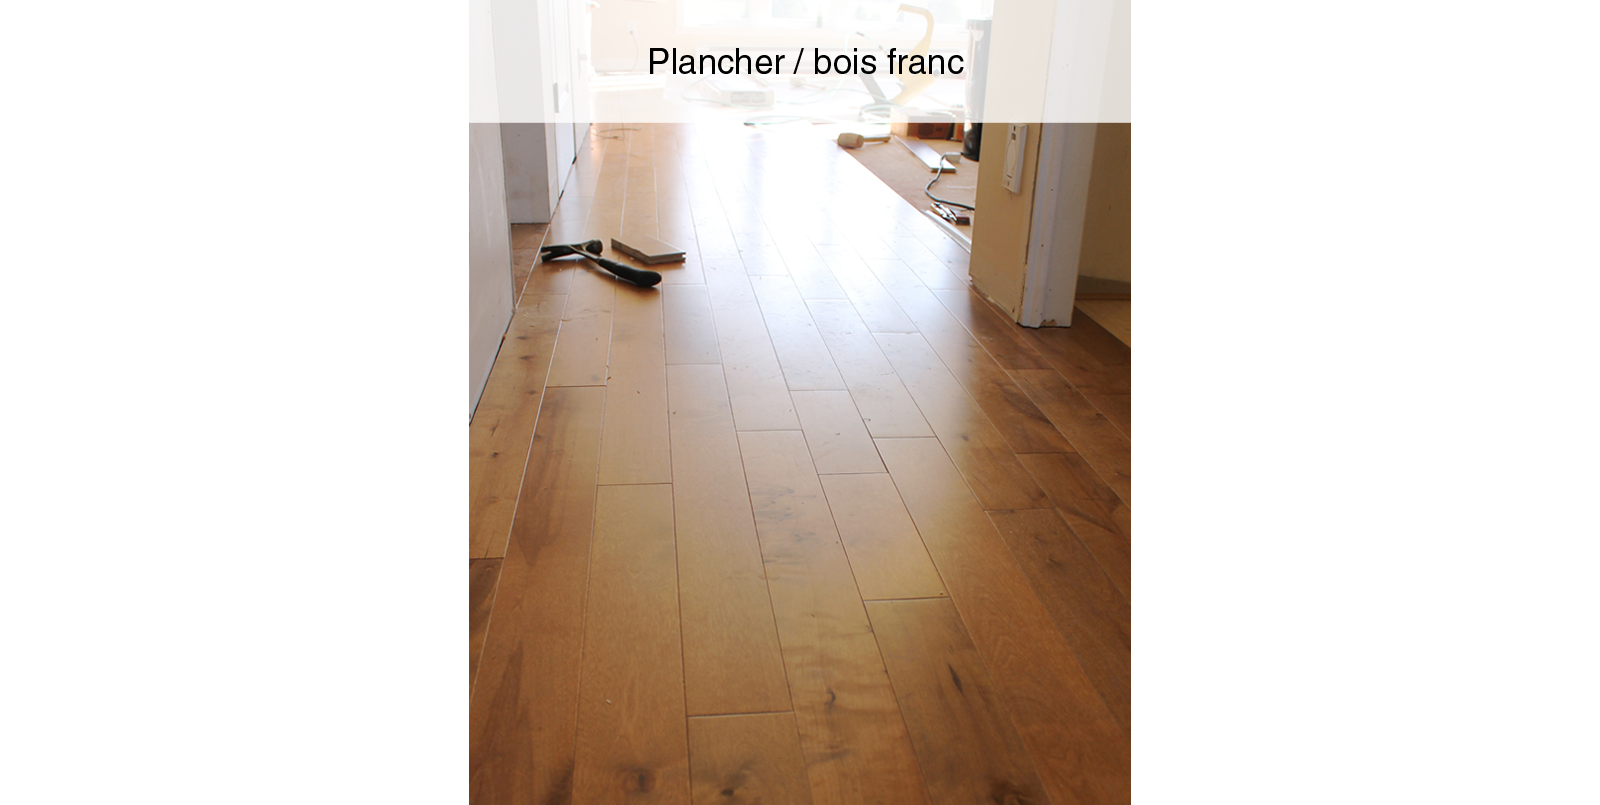 51-1-PANACHE-CONSTRUCTION-RENOVATION-PLANCHER-BOIS-FRANC.jpg